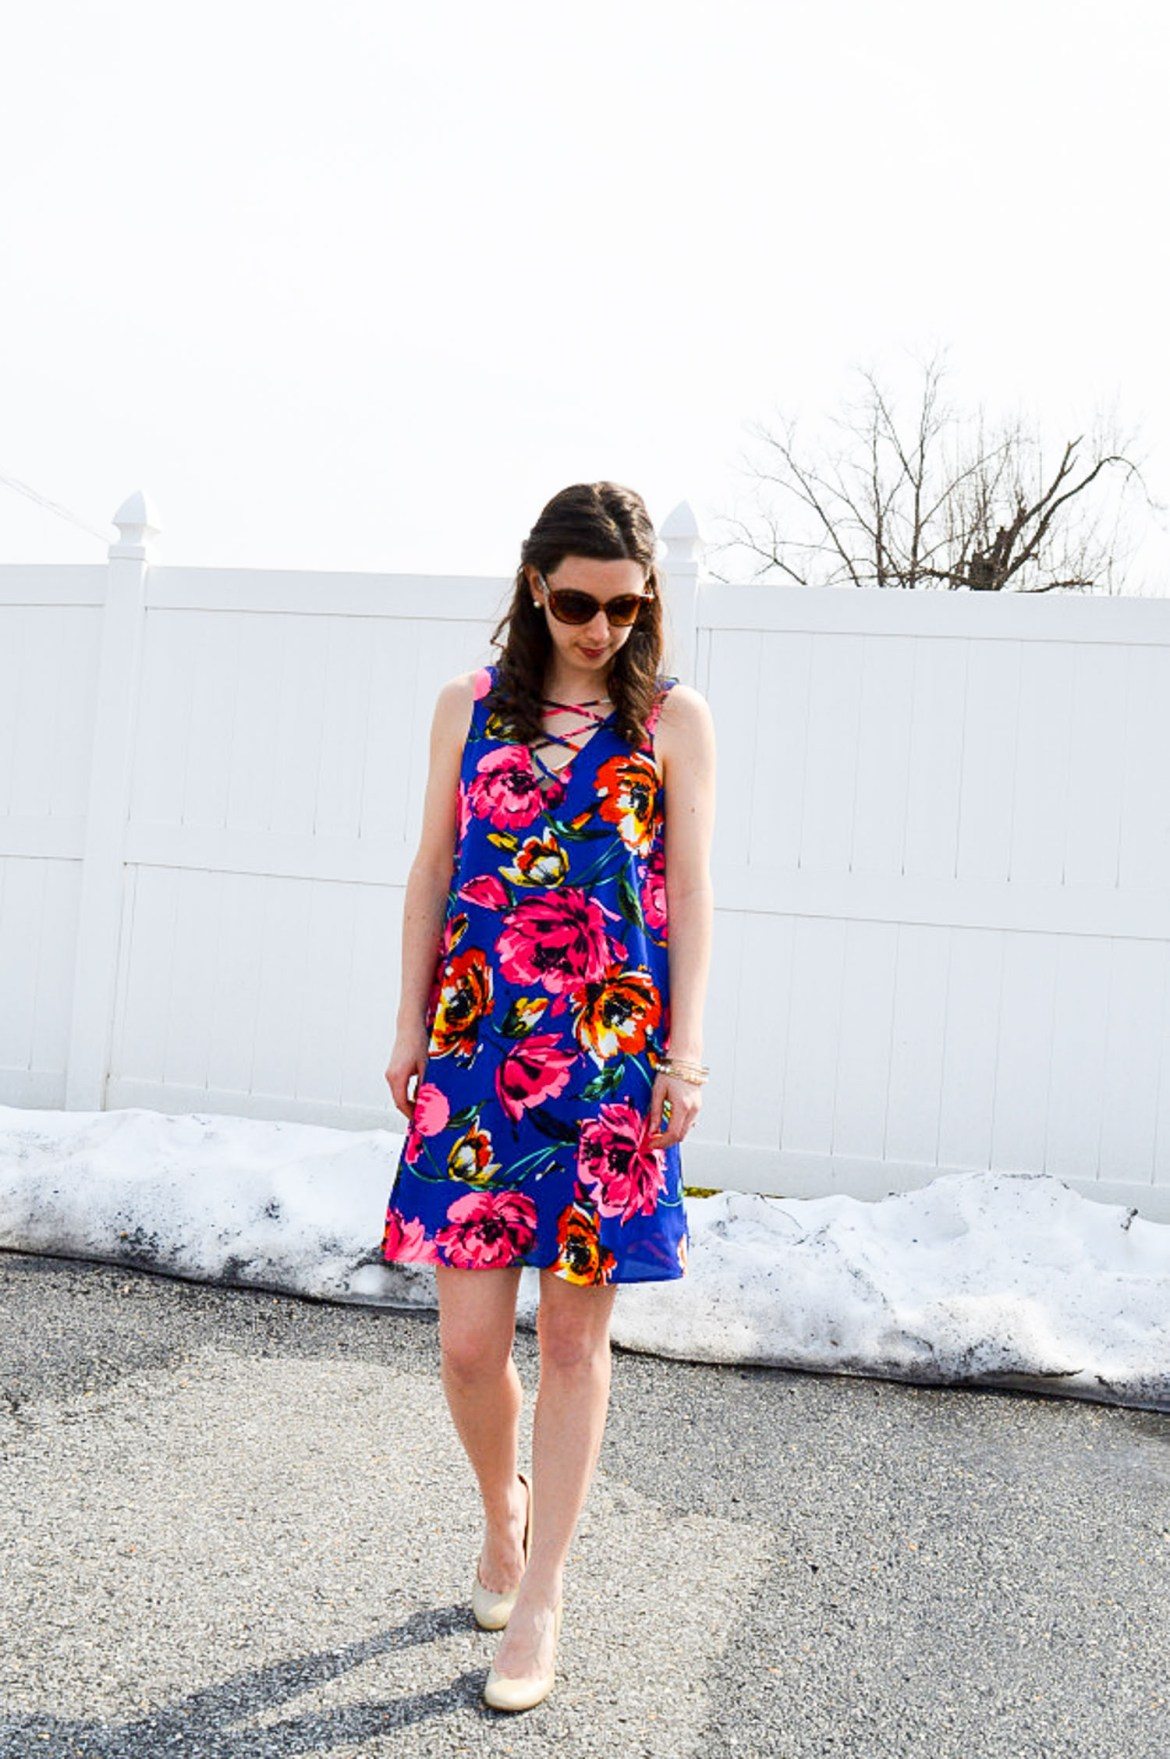 Floral lace-up dress for spring